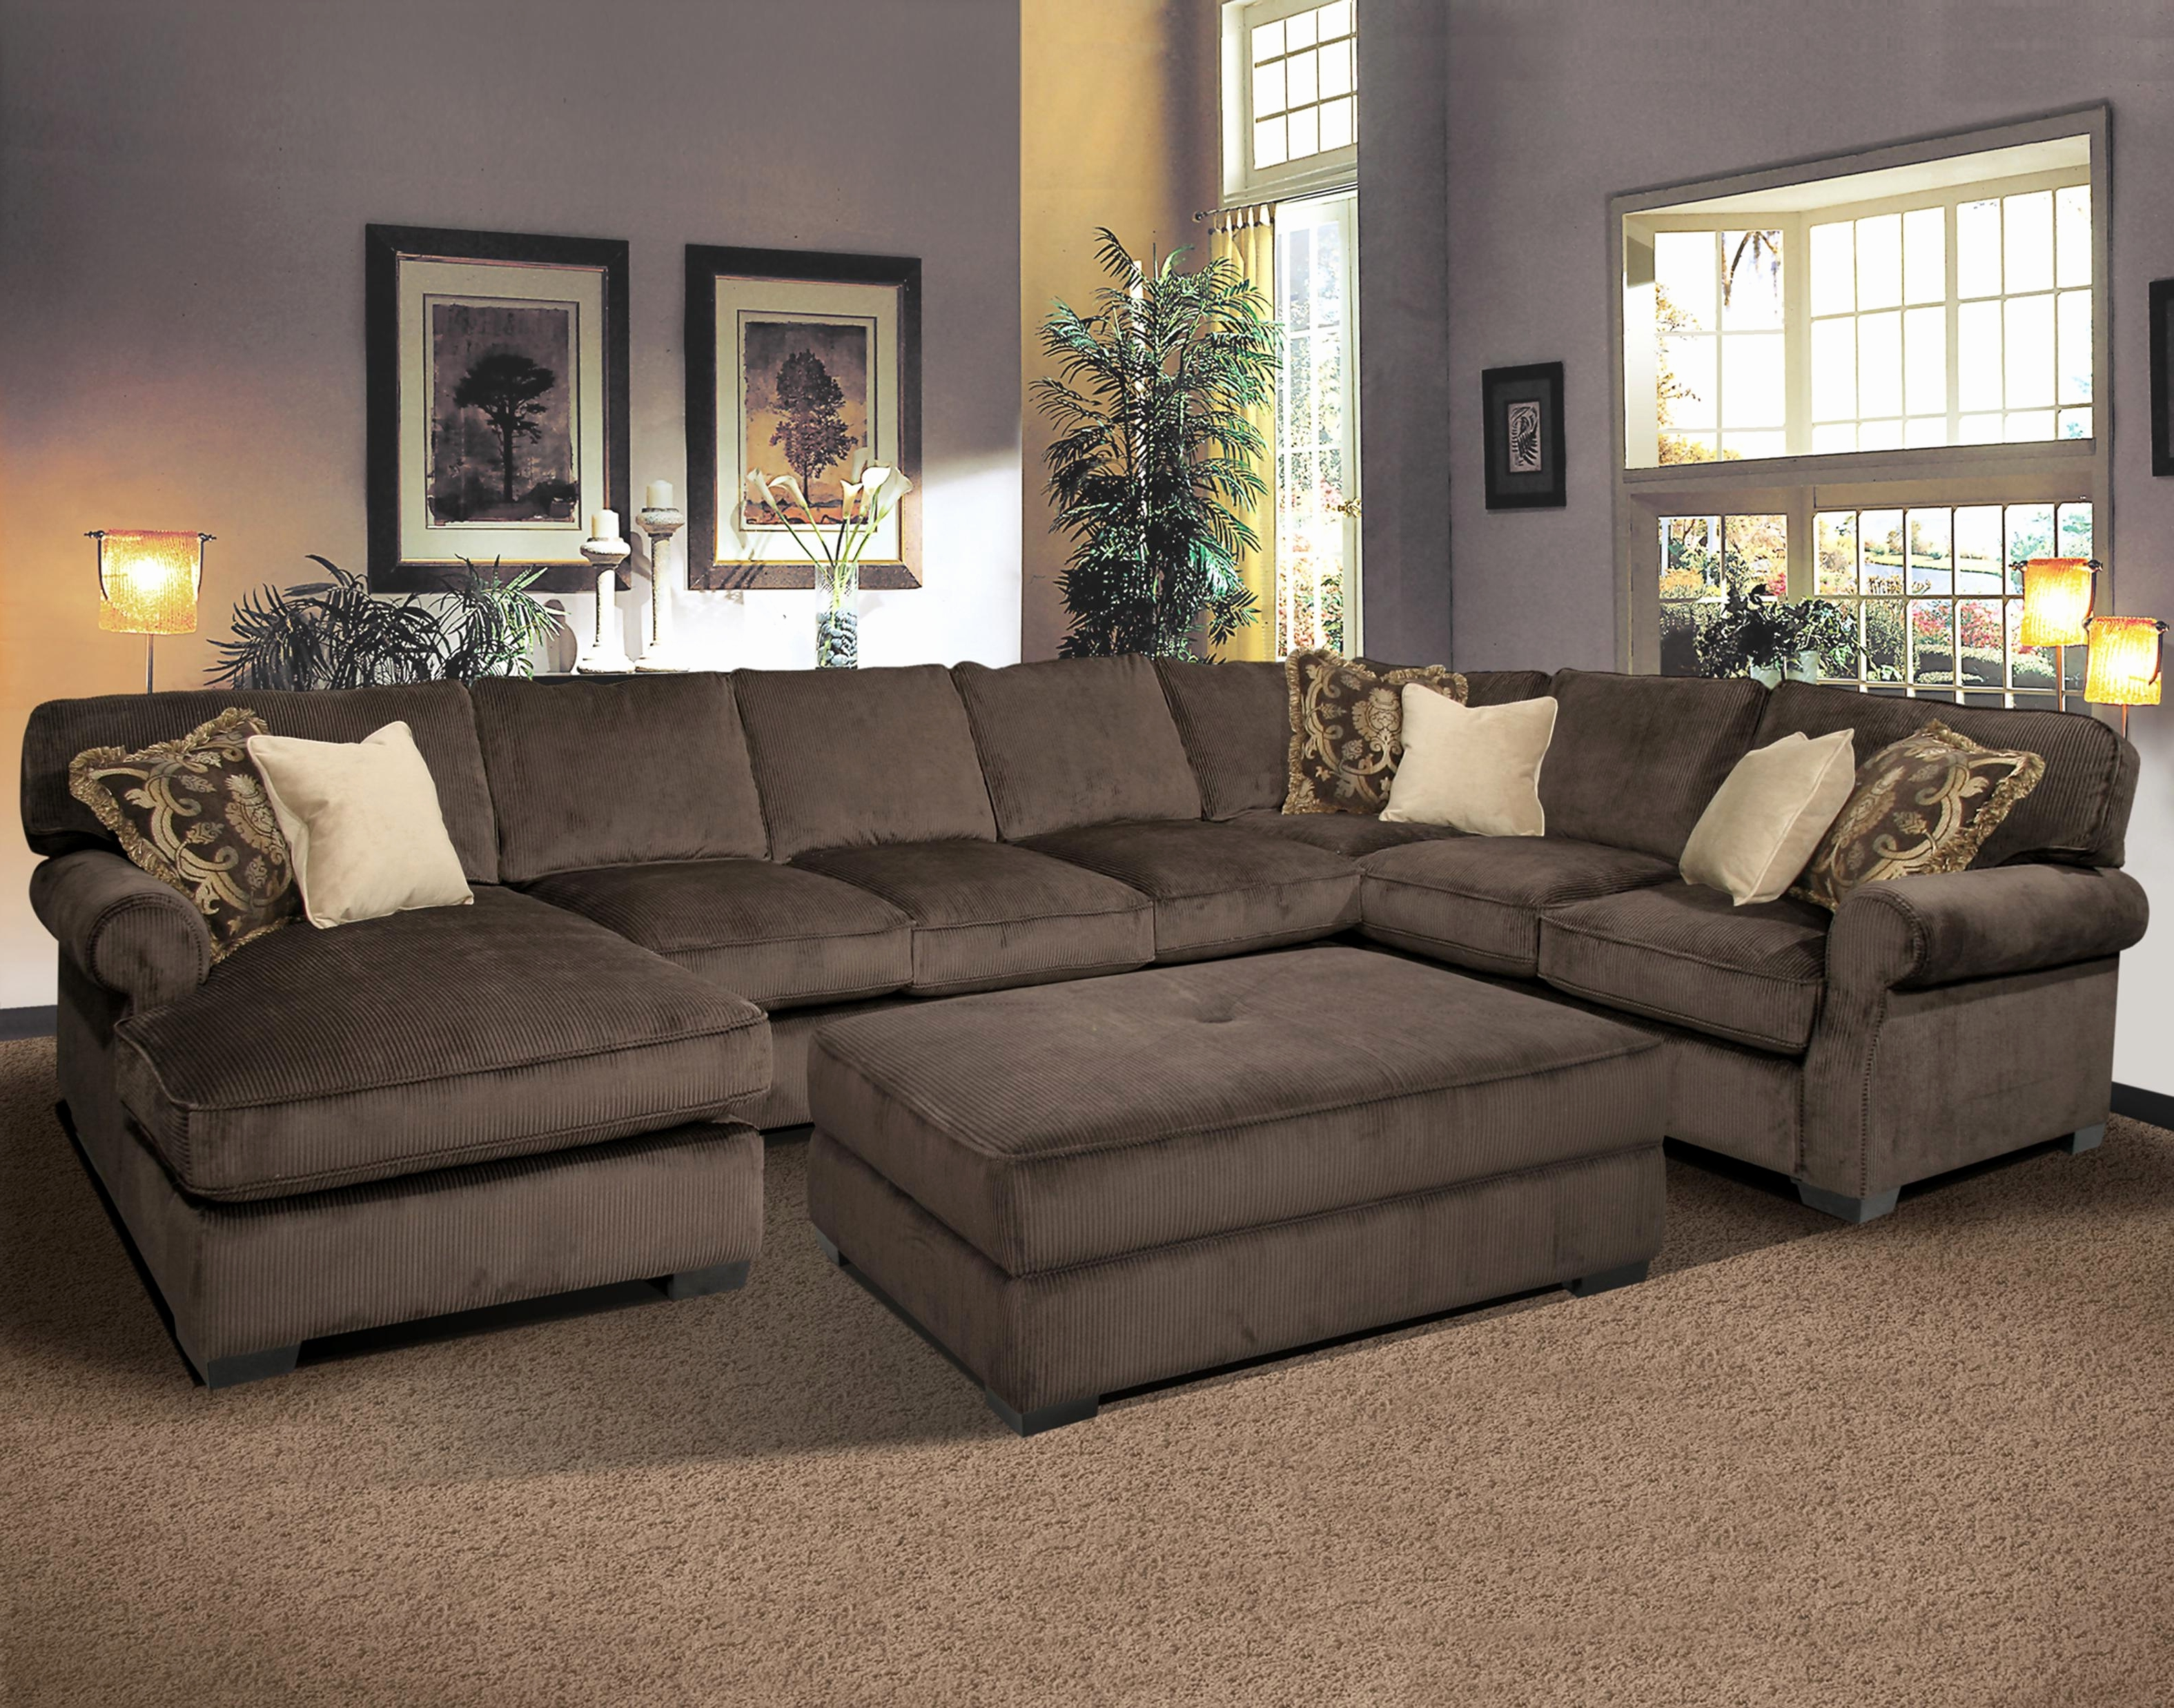 Sofas : Corner Sofa 2 Seater Sofa Quality Sofa Brands High Quality Regarding Popular High End Sectional Sofas (View 18 of 20)